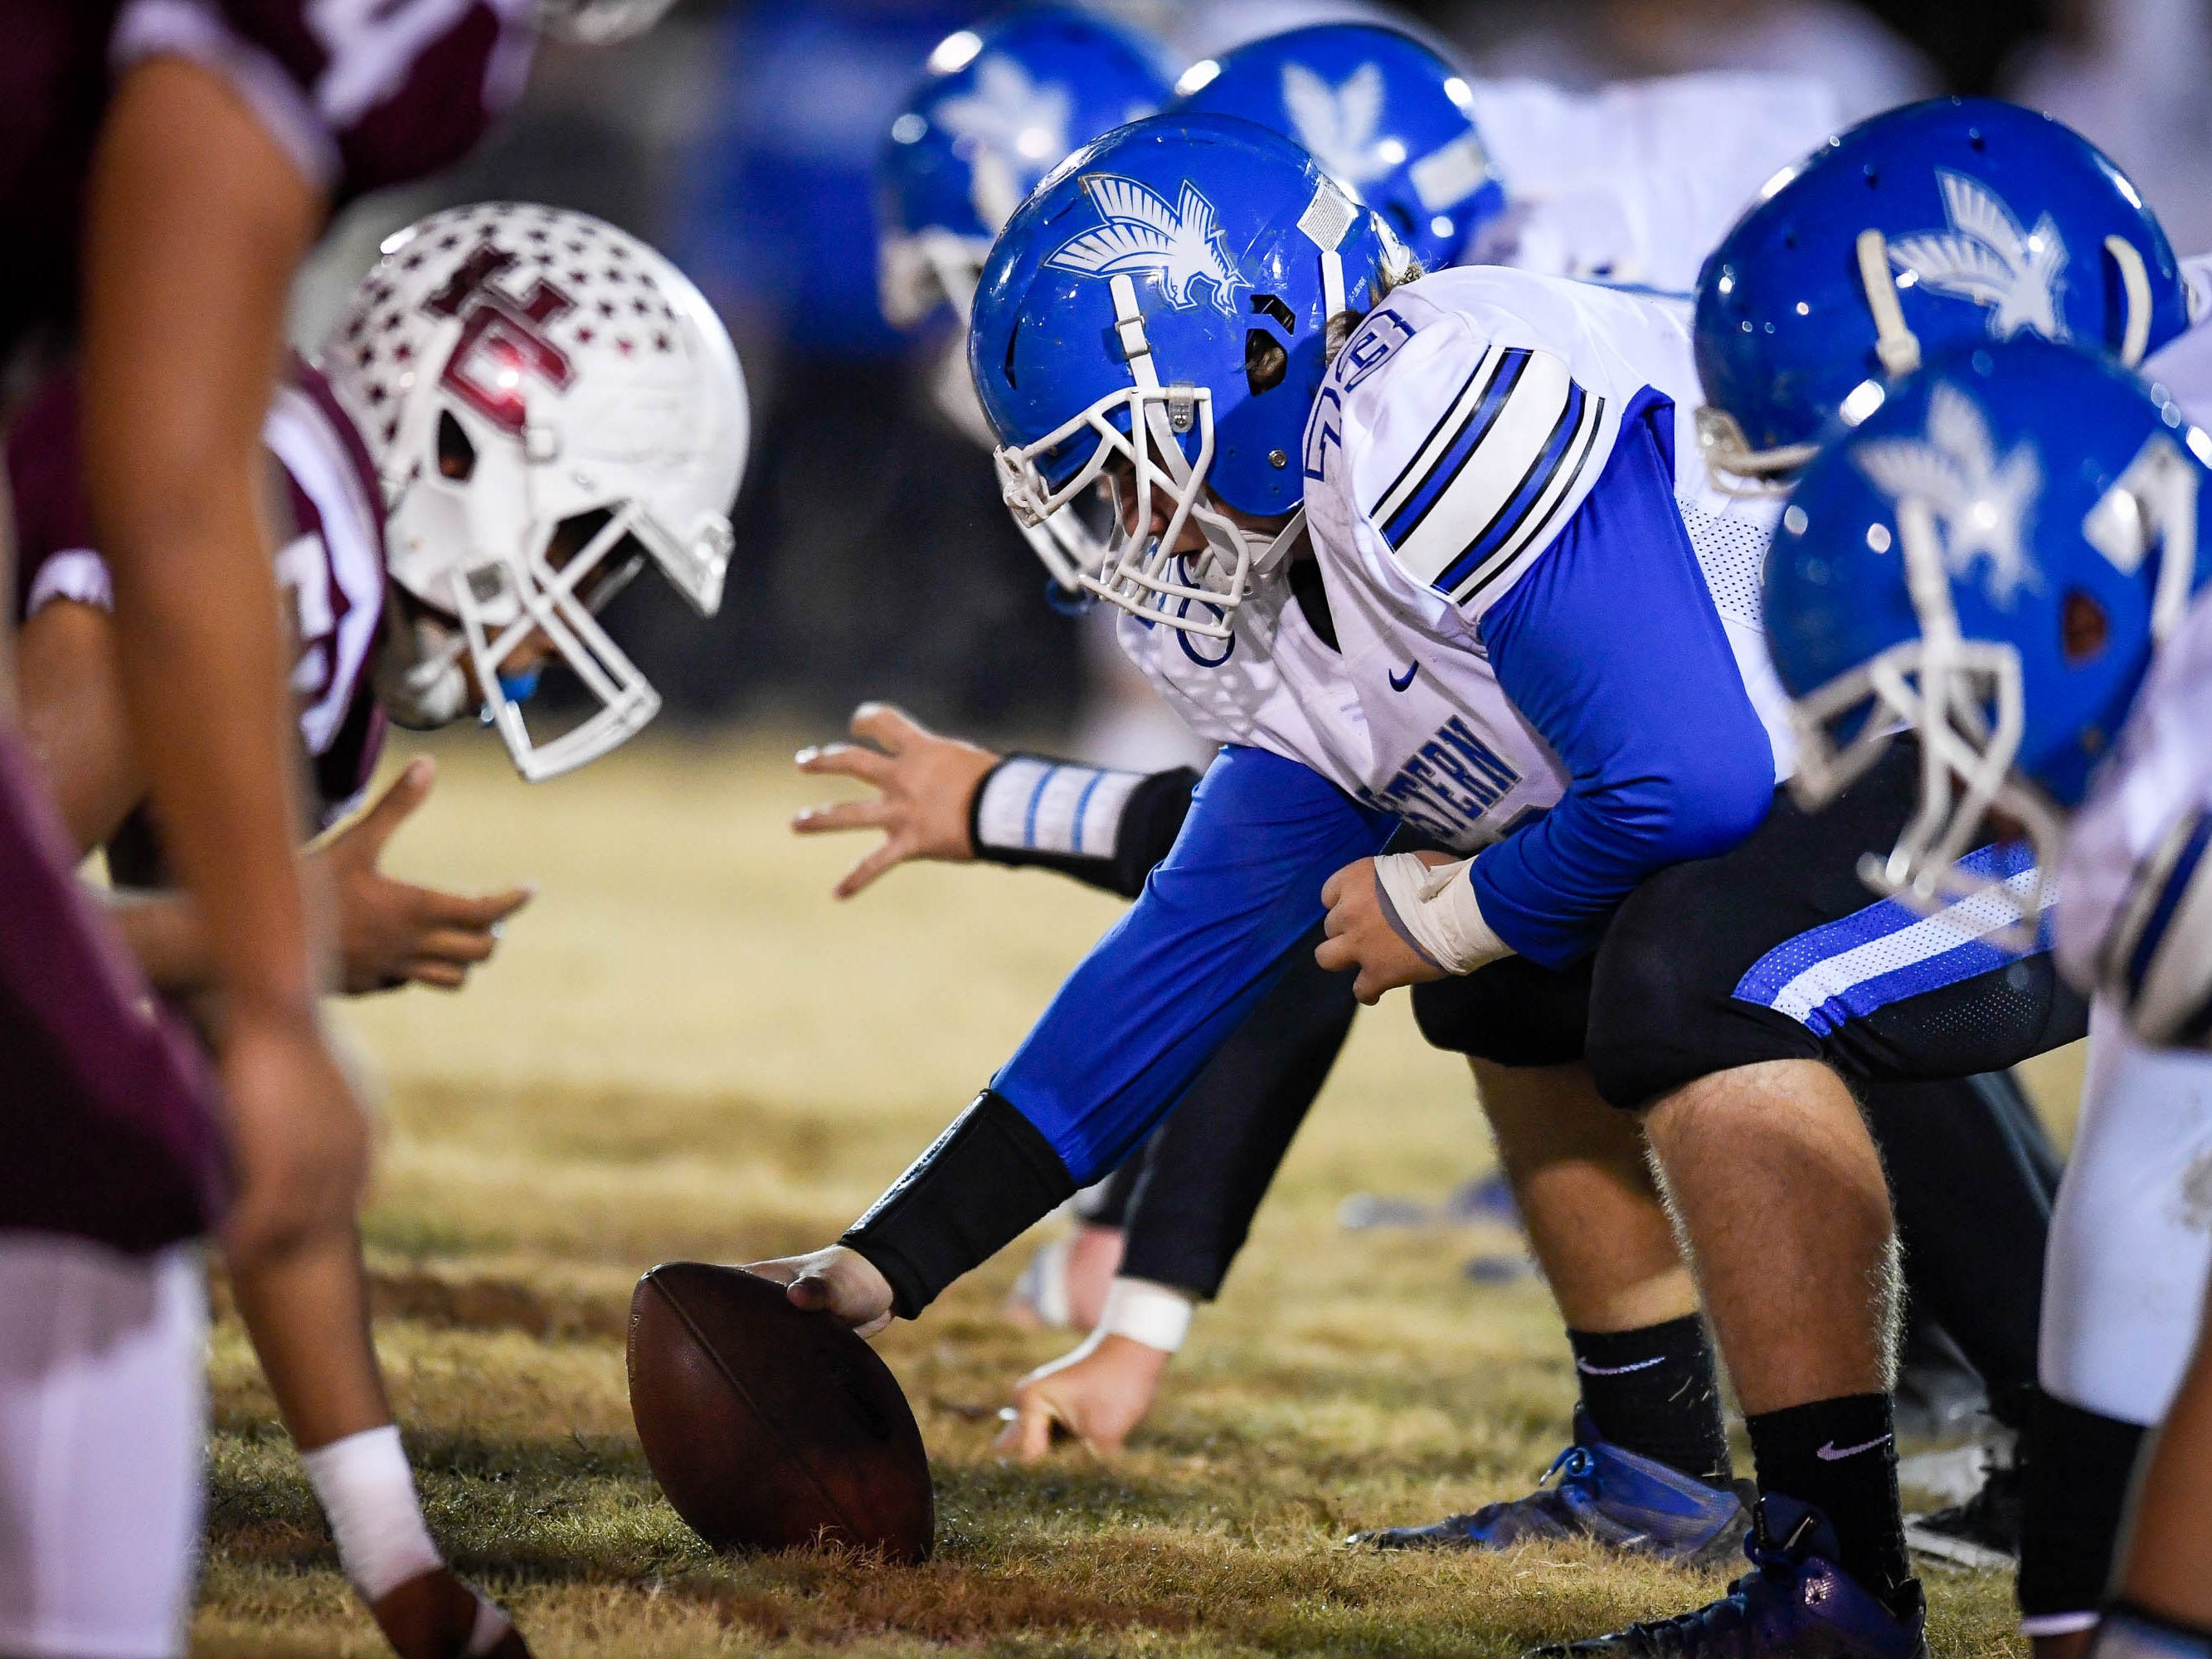 Eastern's James Fornash (73) prepares to snap the ball as the Henderson County Colonels play the Louisville Eastern Eagles in the first round of the 6-A playoffs at Colonel Field Friday, November 2, 2018.